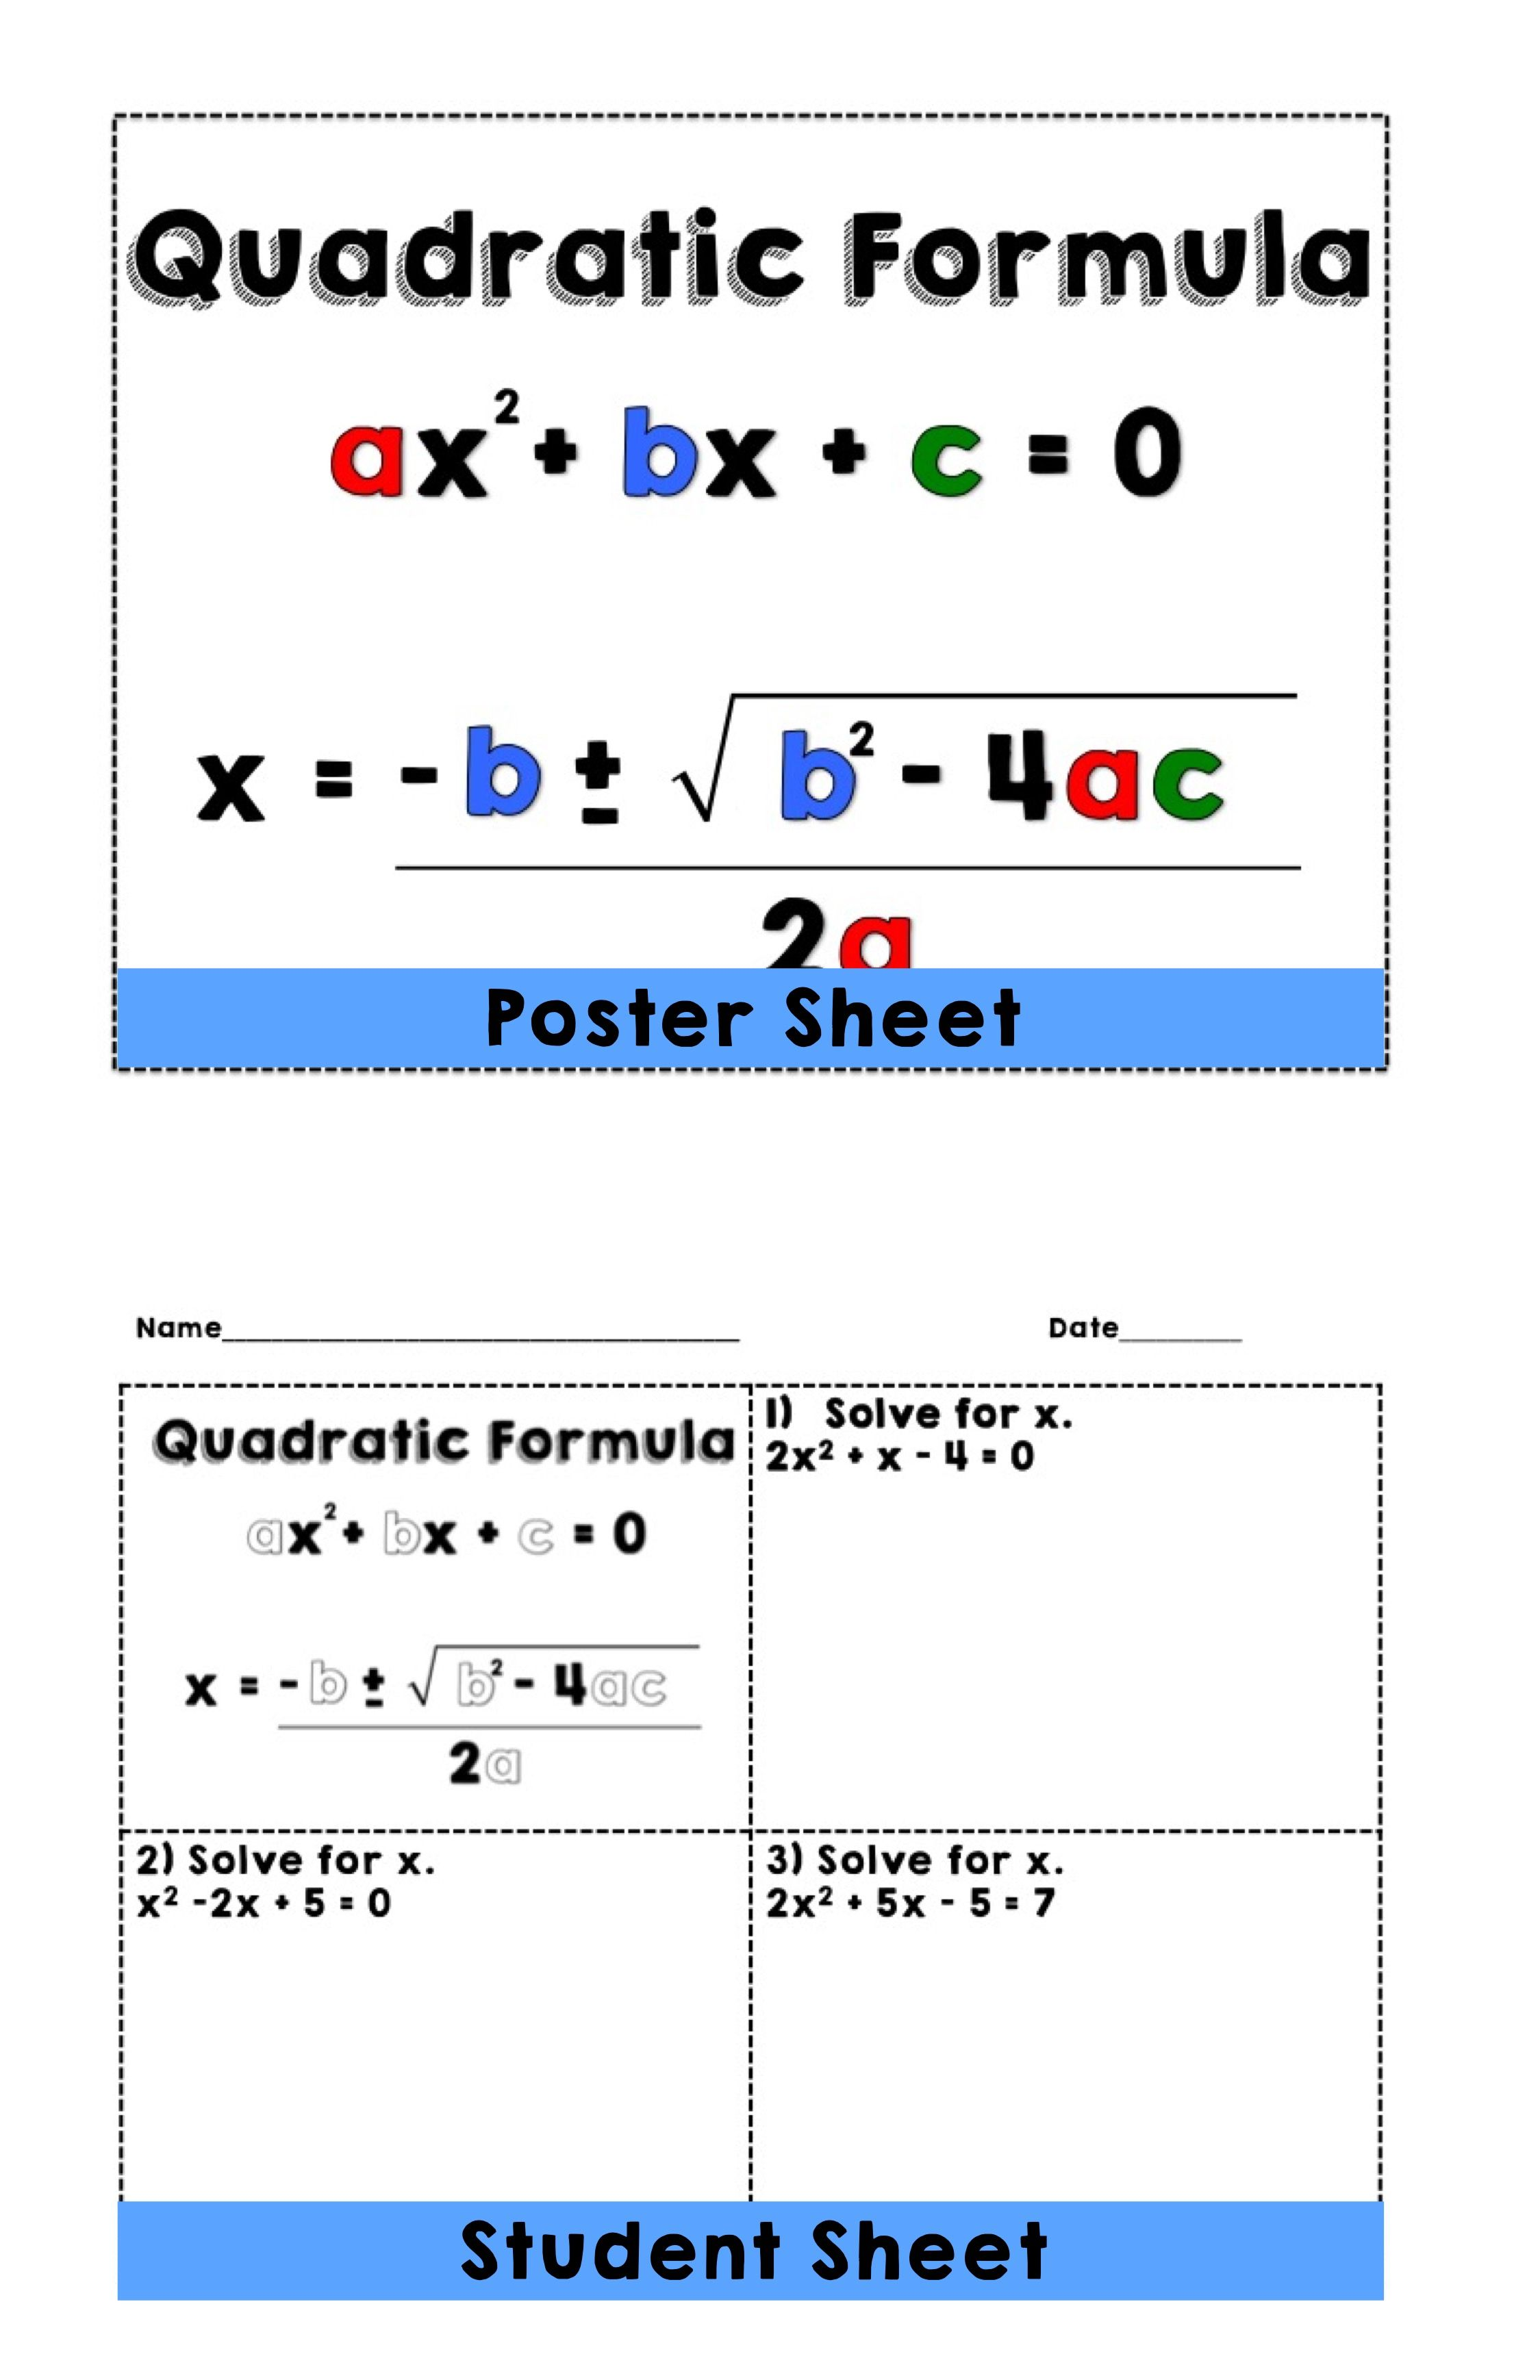 Quadratic Formula: Posters and Reference Sheet | Teaching ...